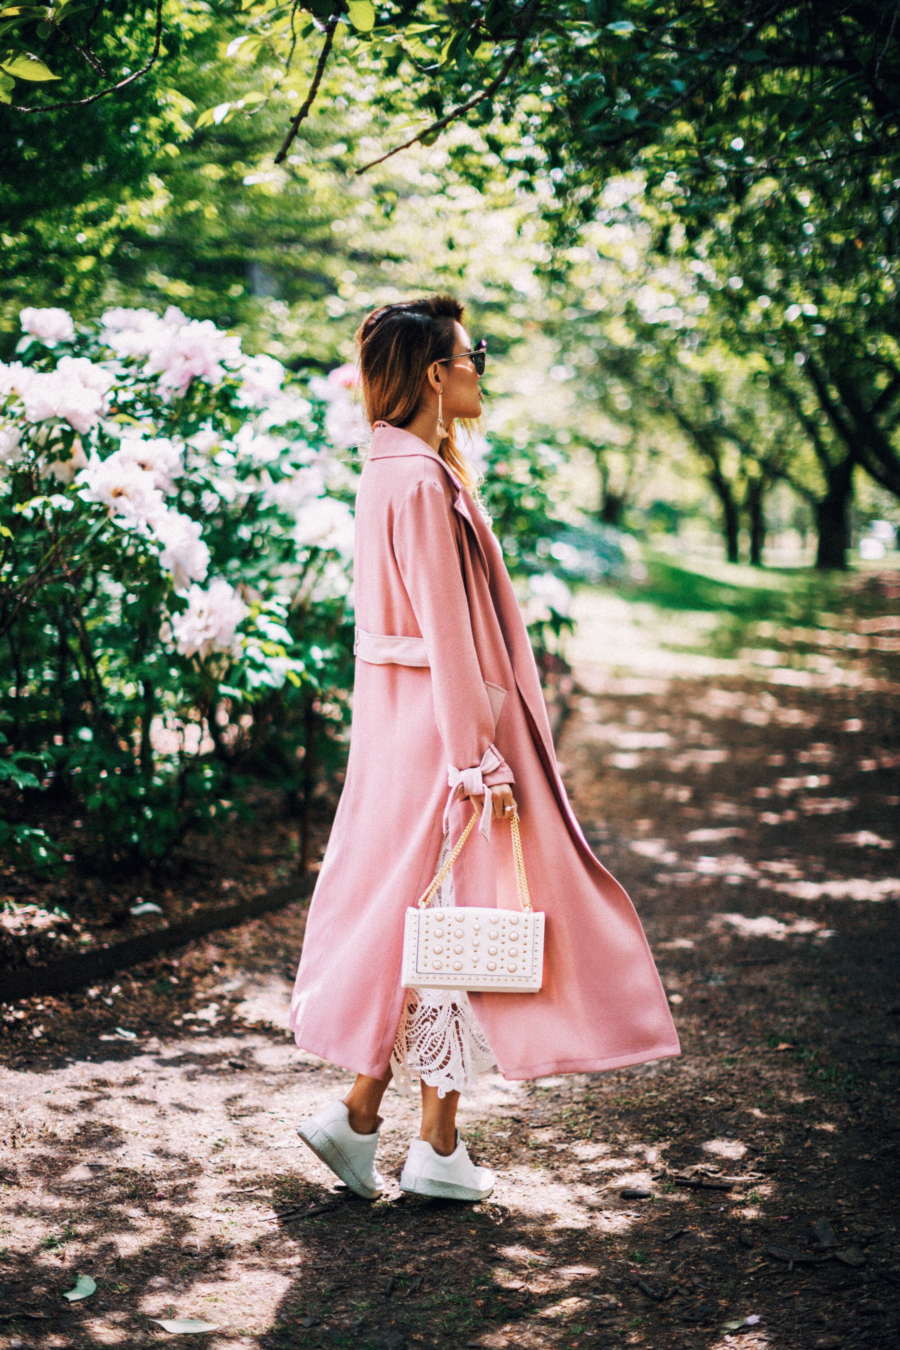 Pink Trench White Dress - 9 Fresh Ways To Style Your Favorite Trench Coat For Any Occasion This Spring // NotJessFashion.com